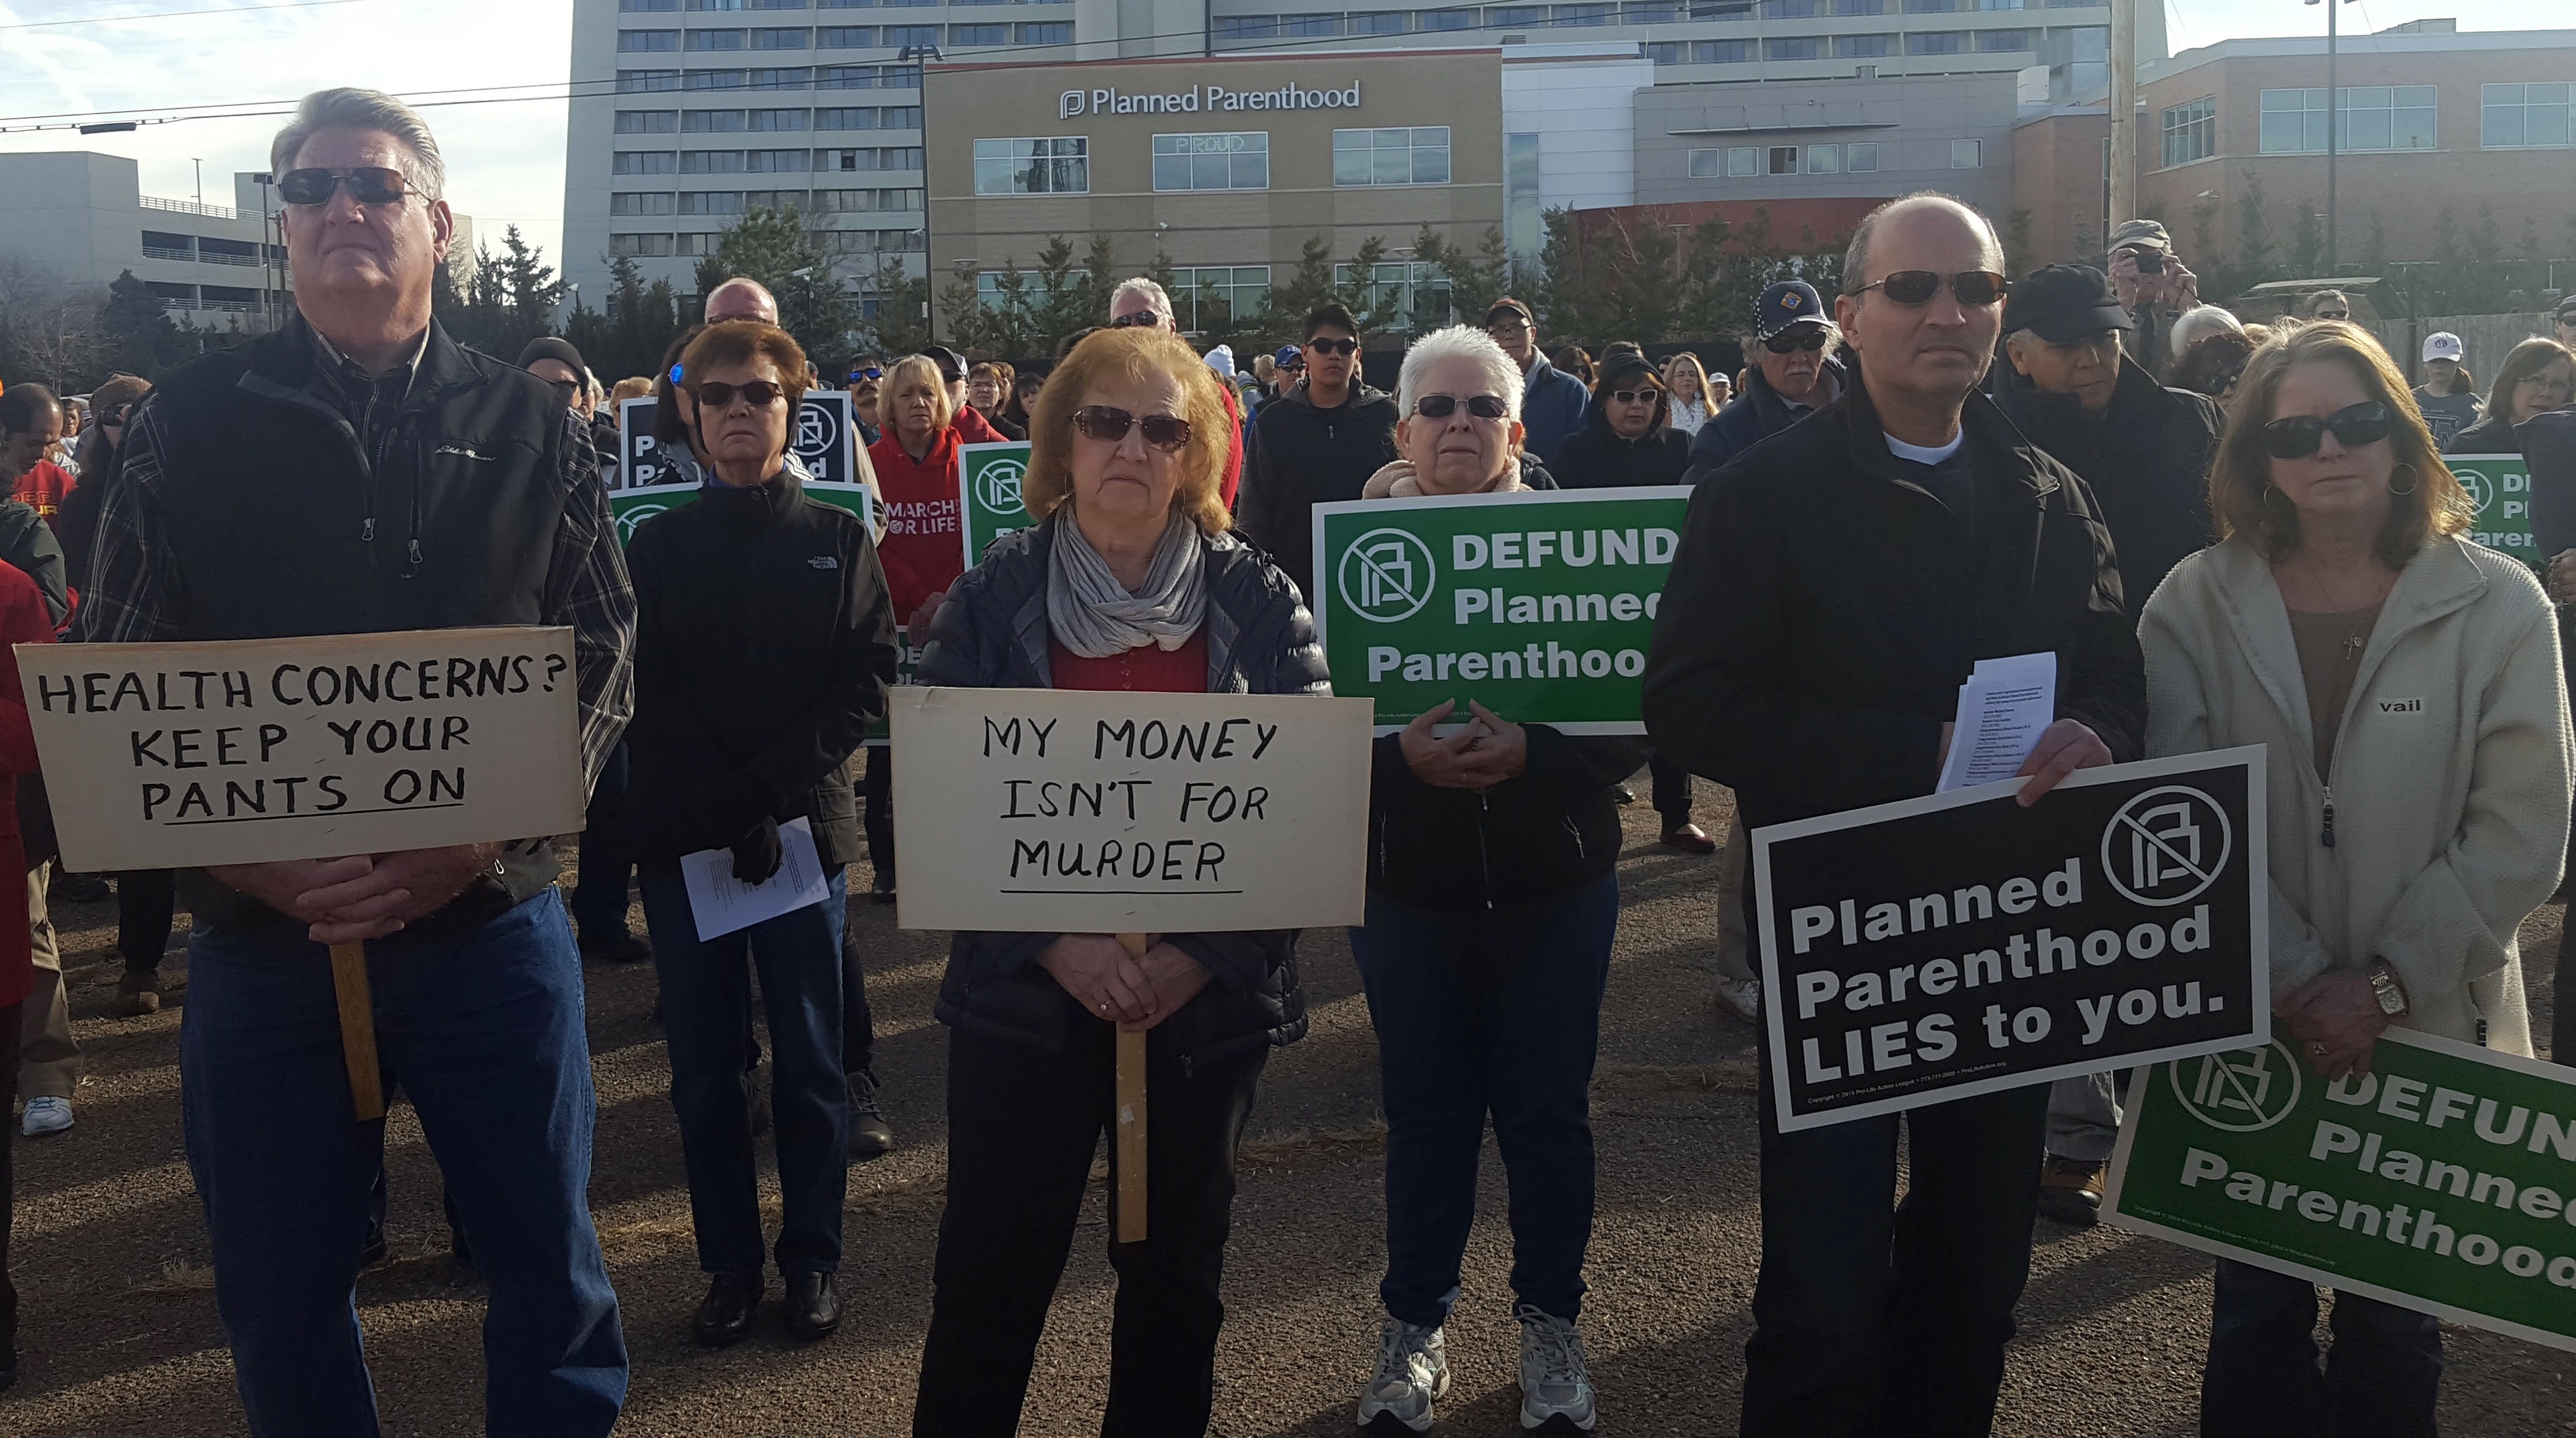 Photo: Planned Parenthood Opponents 2-11-2017 Brash